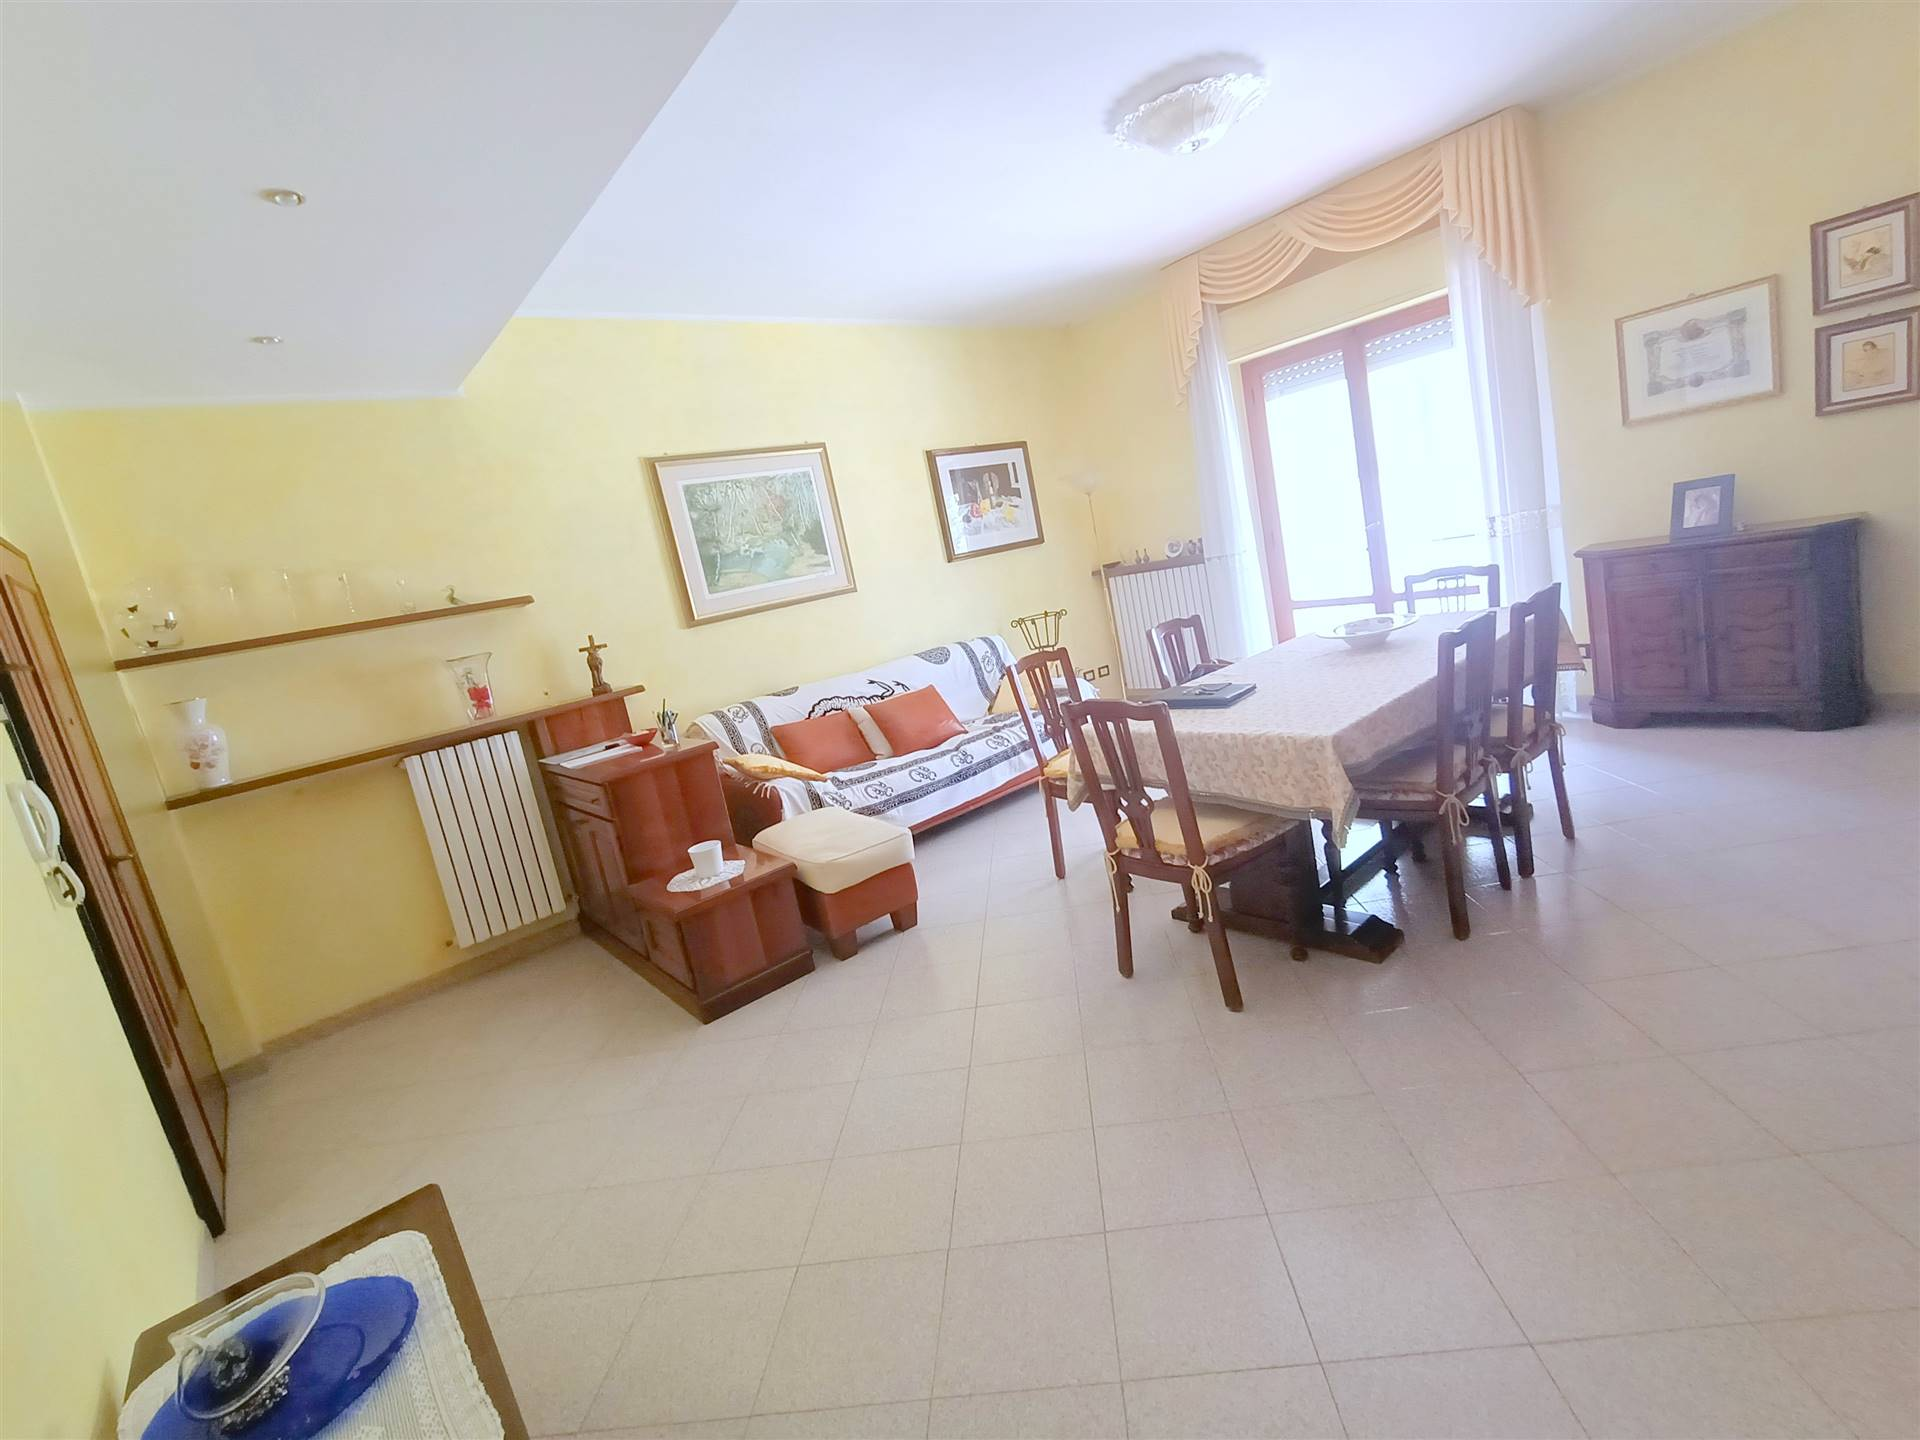 OSIMO, Apartment for sale of 116 Sq. mt., Good condition, Heating Individual heating system, placed at 1° on 3, composed by: 6.5 Rooms, Separate